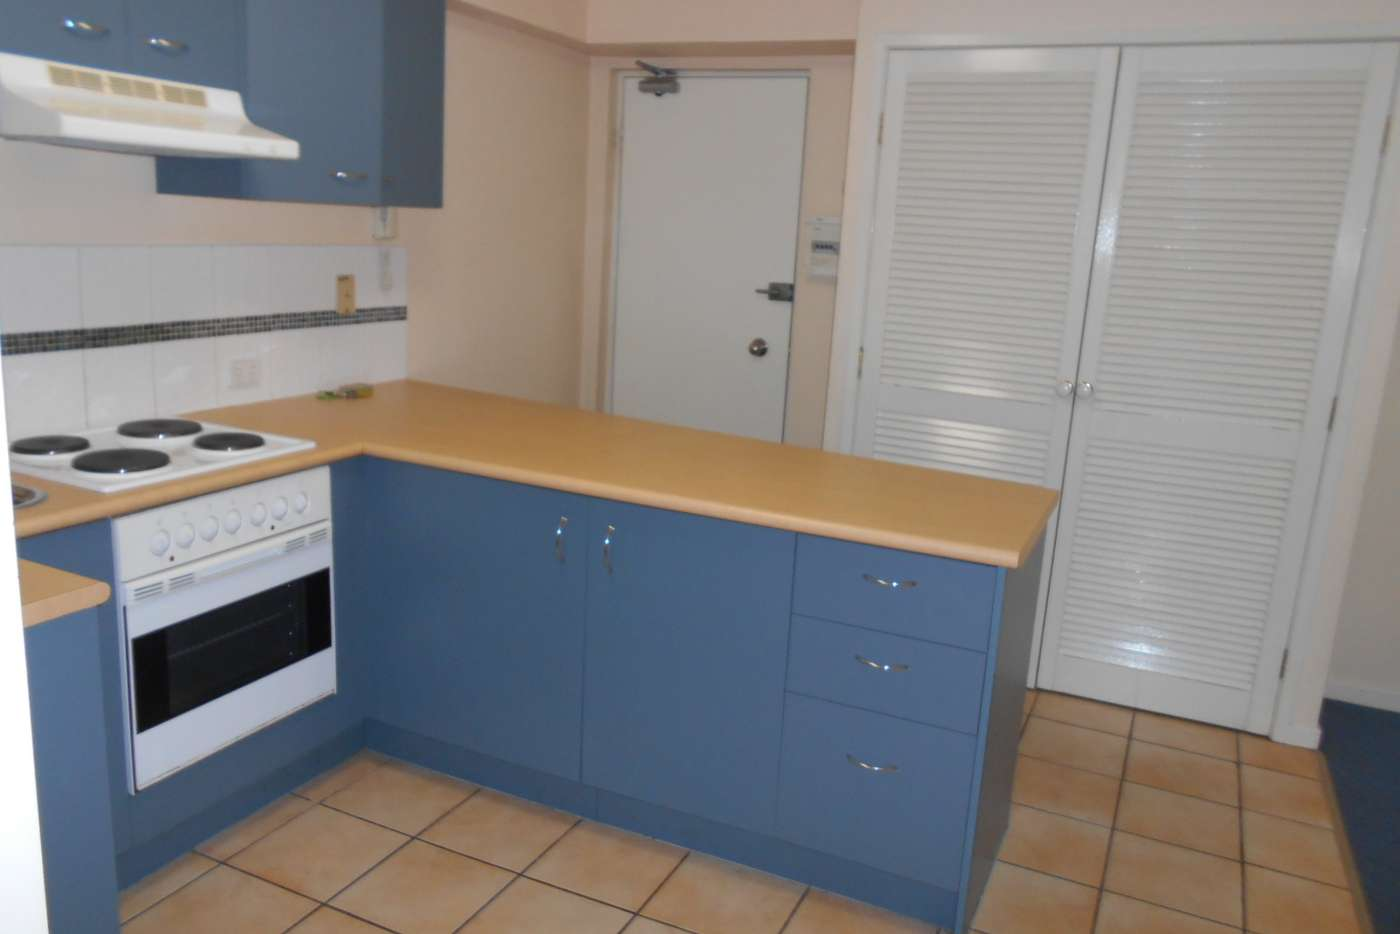 Seventh view of Homely apartment listing, 38 Lissner Street, Toowong QLD 4066